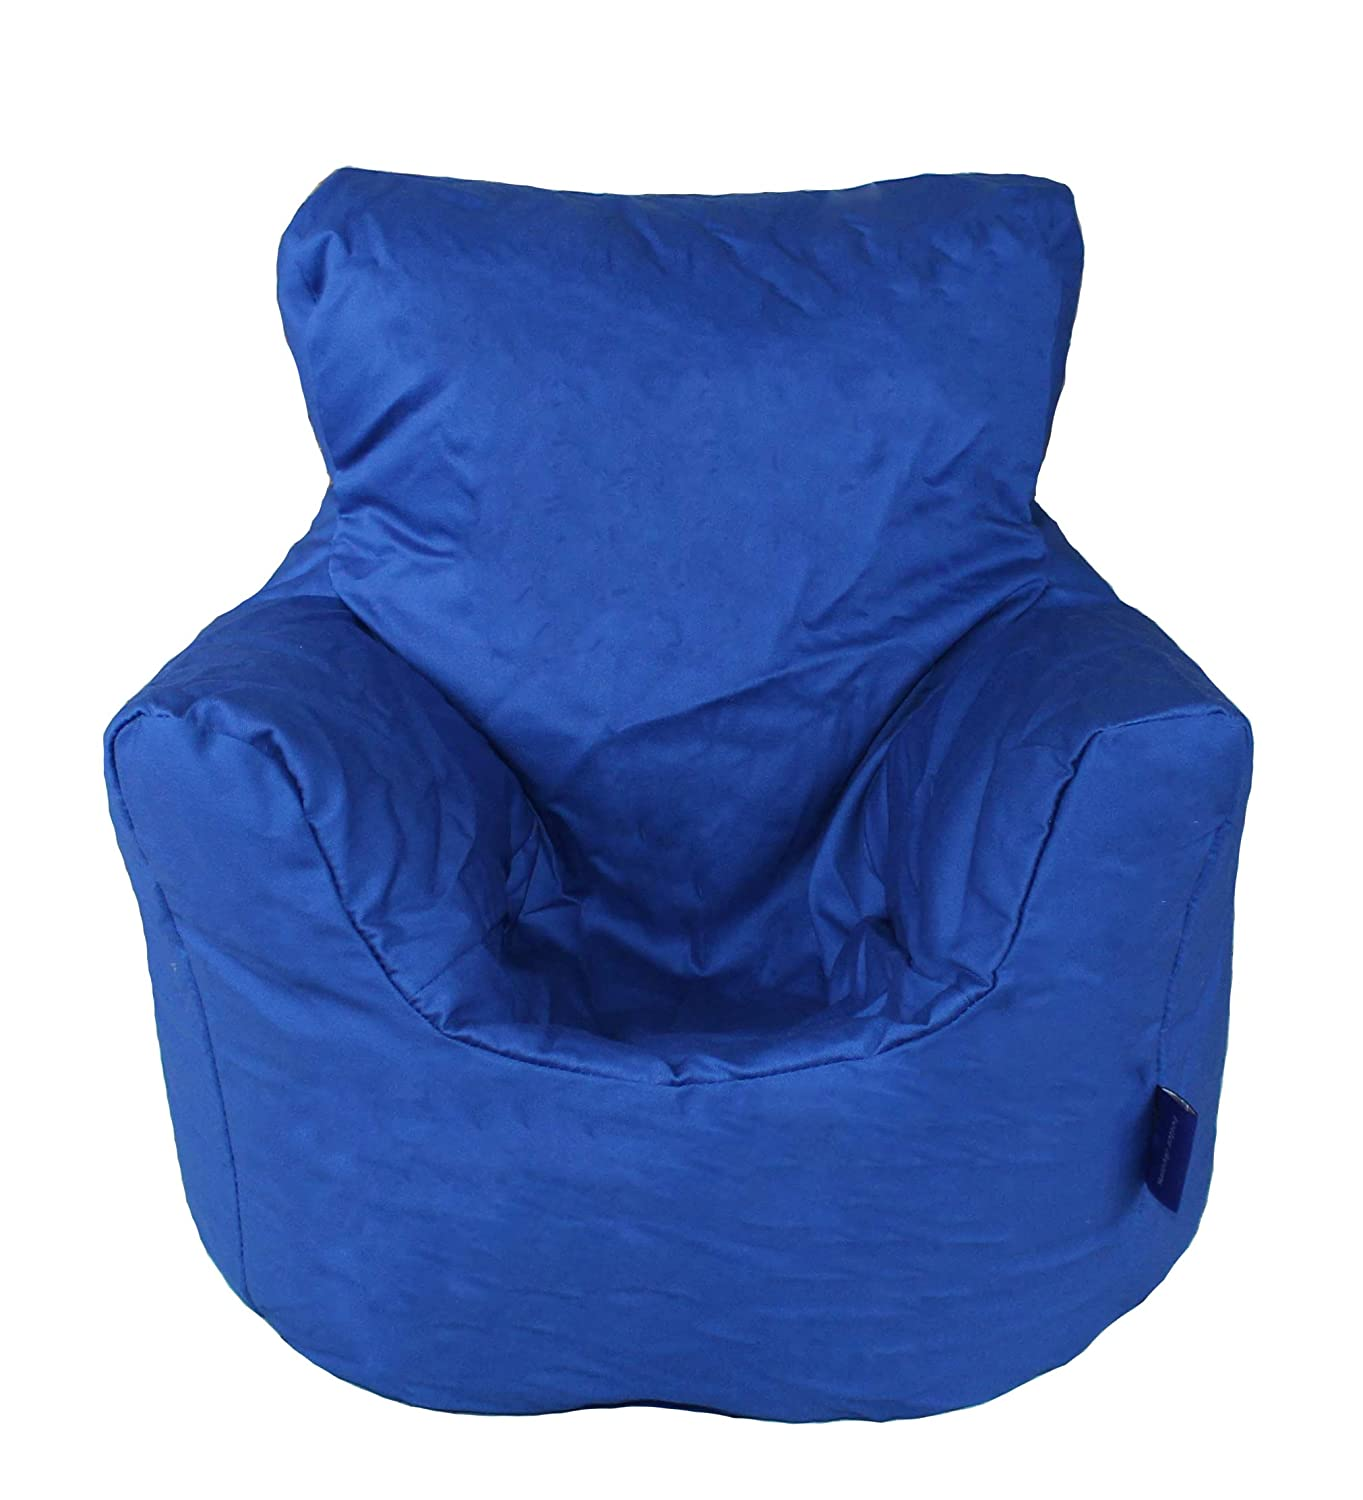 Childrens Bean Bag Chair In Two Sizes And Nine Colours 100% Cotton Twill (Black, Small 50x50x50cm) Better Dreams